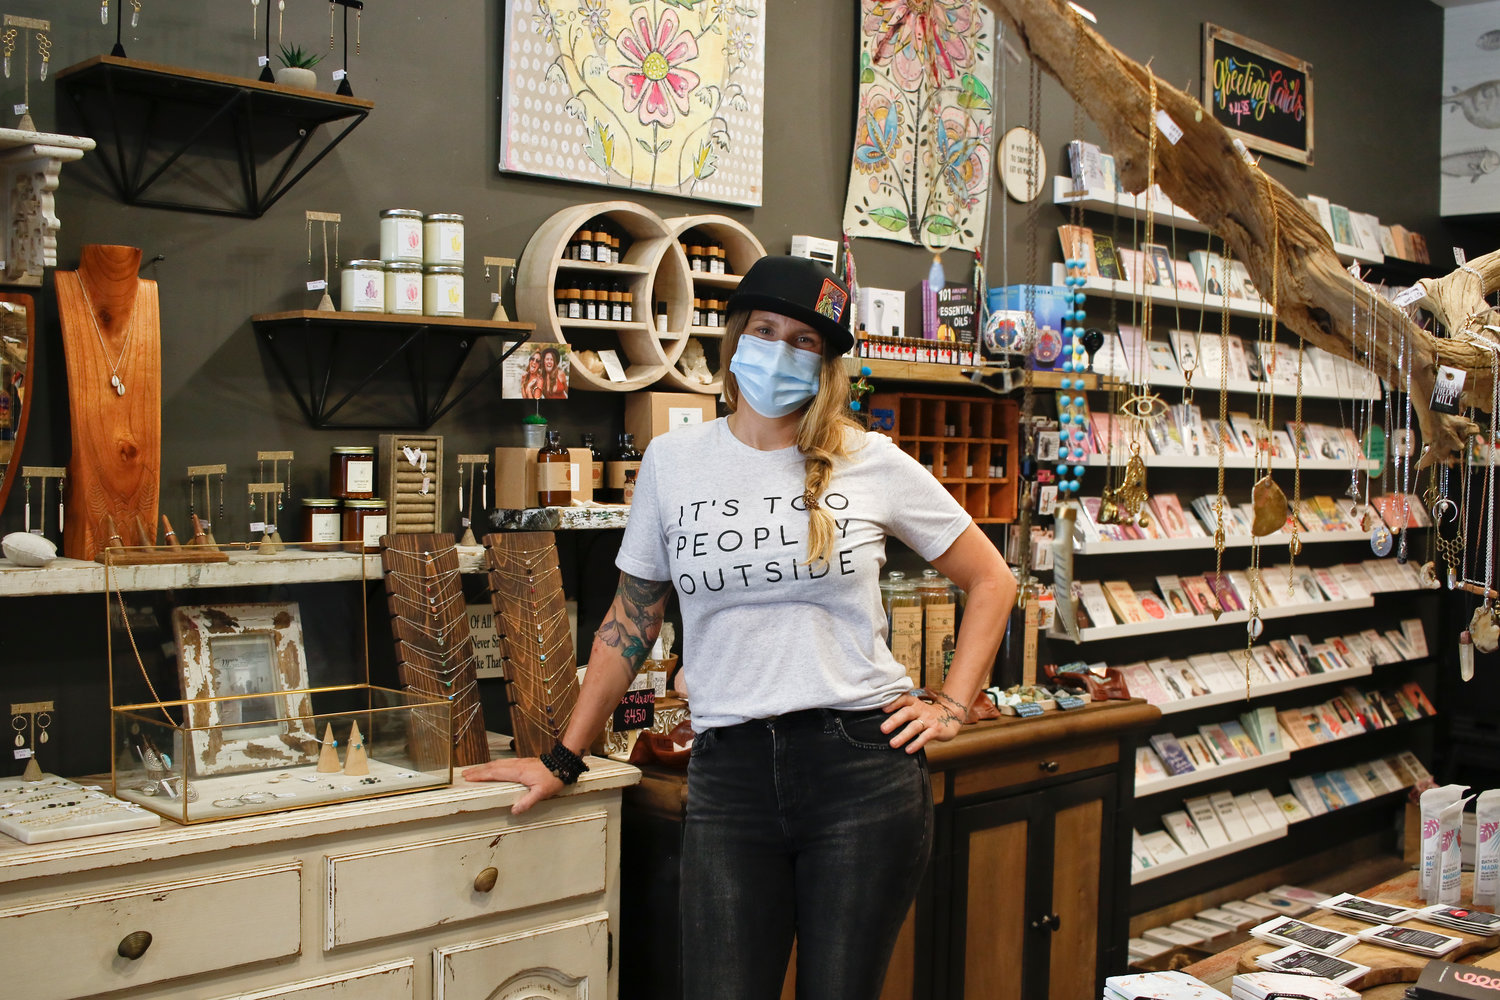 Angela Skudin reopened her store, The Codfish Cowboy, Friday, after 2-month shutdown.